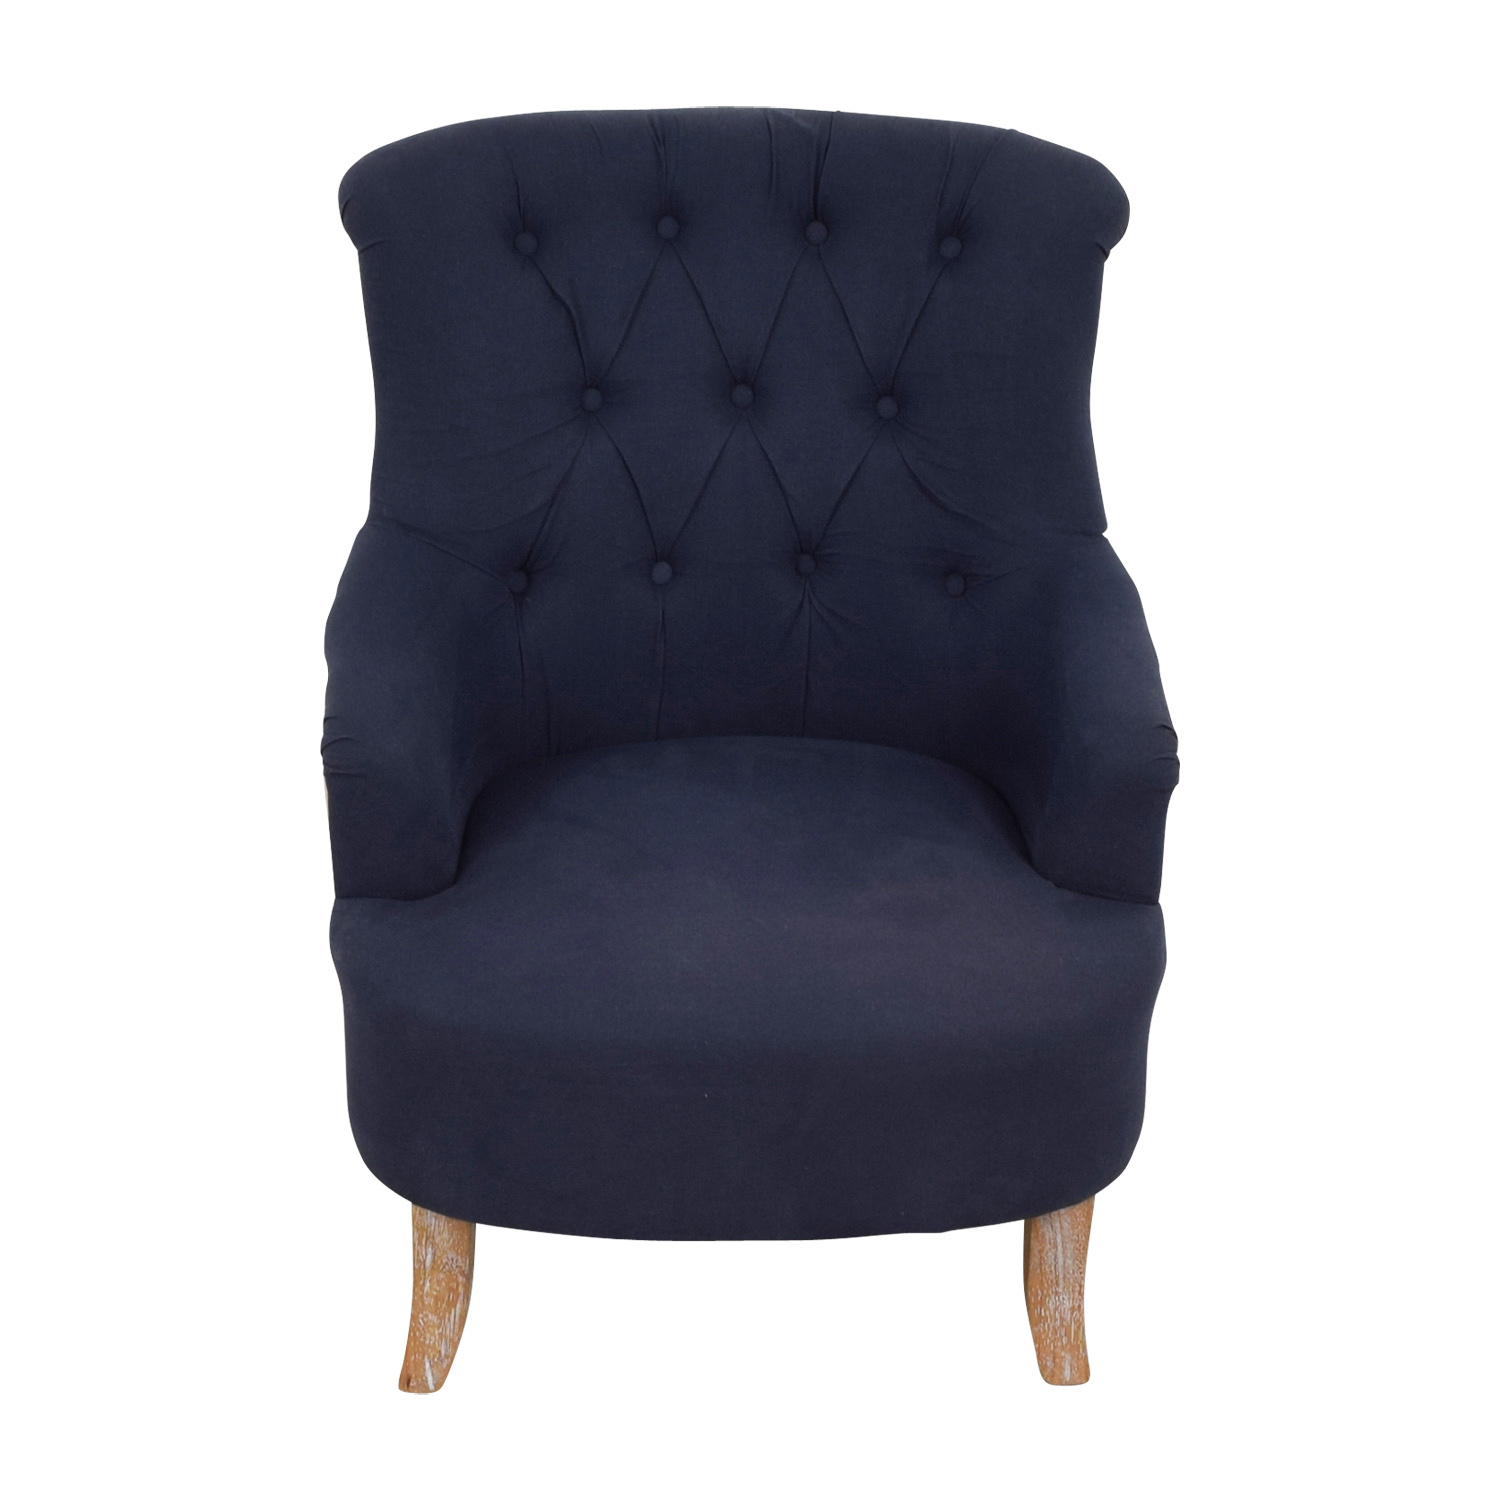 buy Pier 1 Imports Pier 1 Imports Blue and Tan Tufted Armchair online